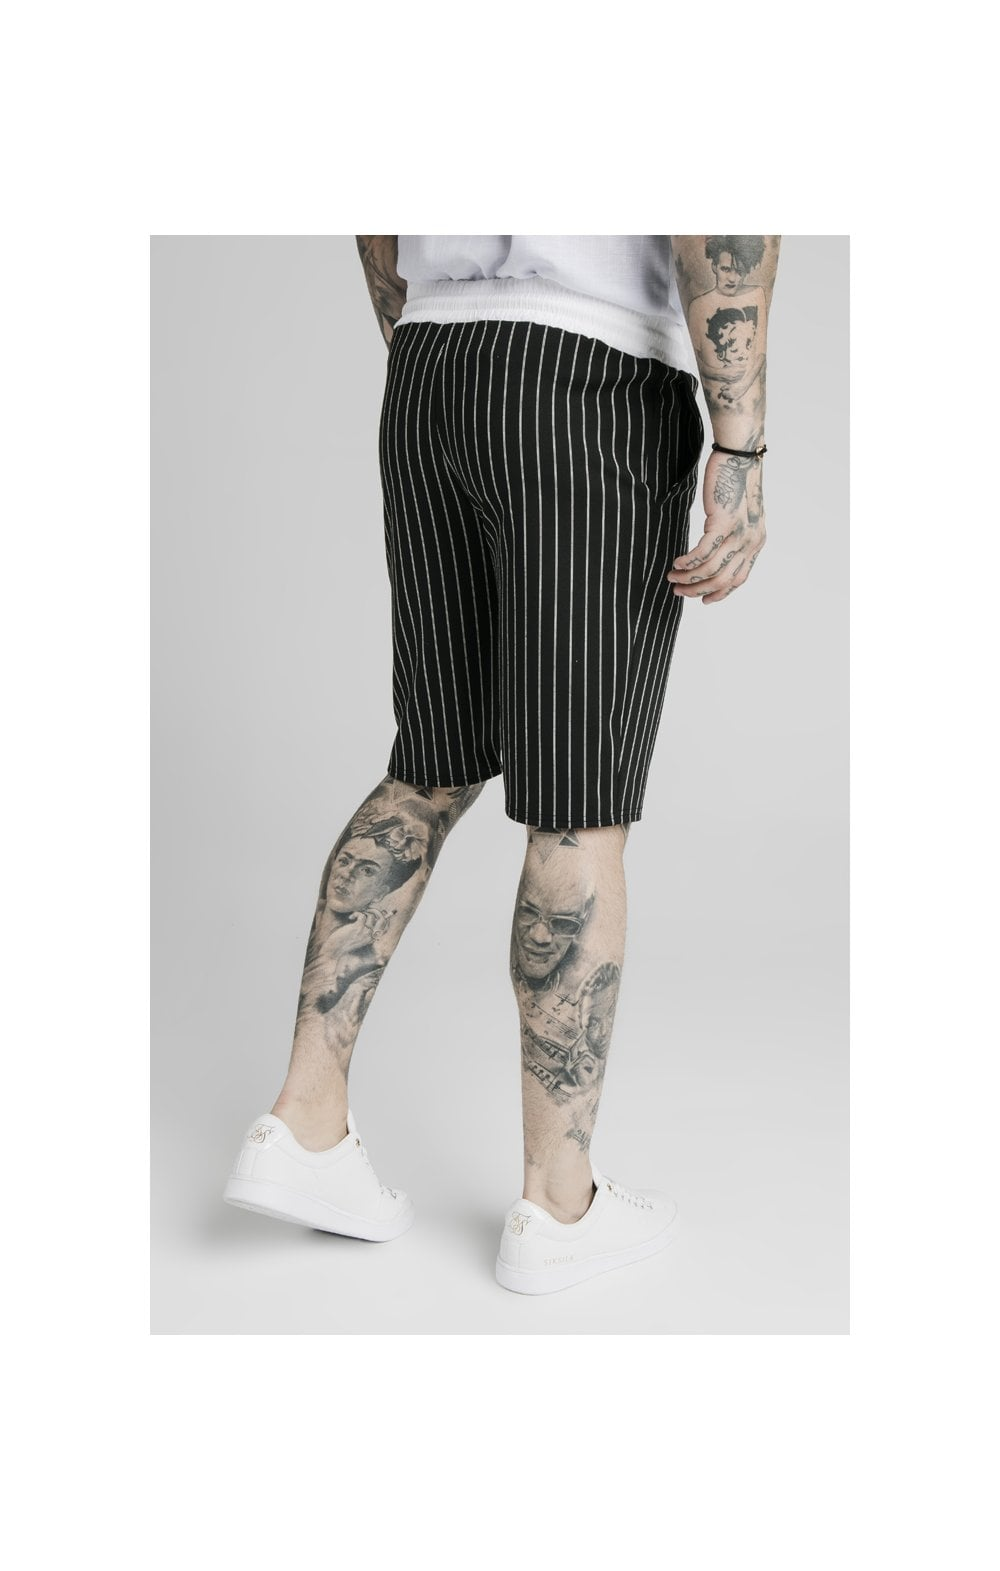 Load image into Gallery viewer, SikSilk Chino Elasticated Long Shorts - Black & White (4)